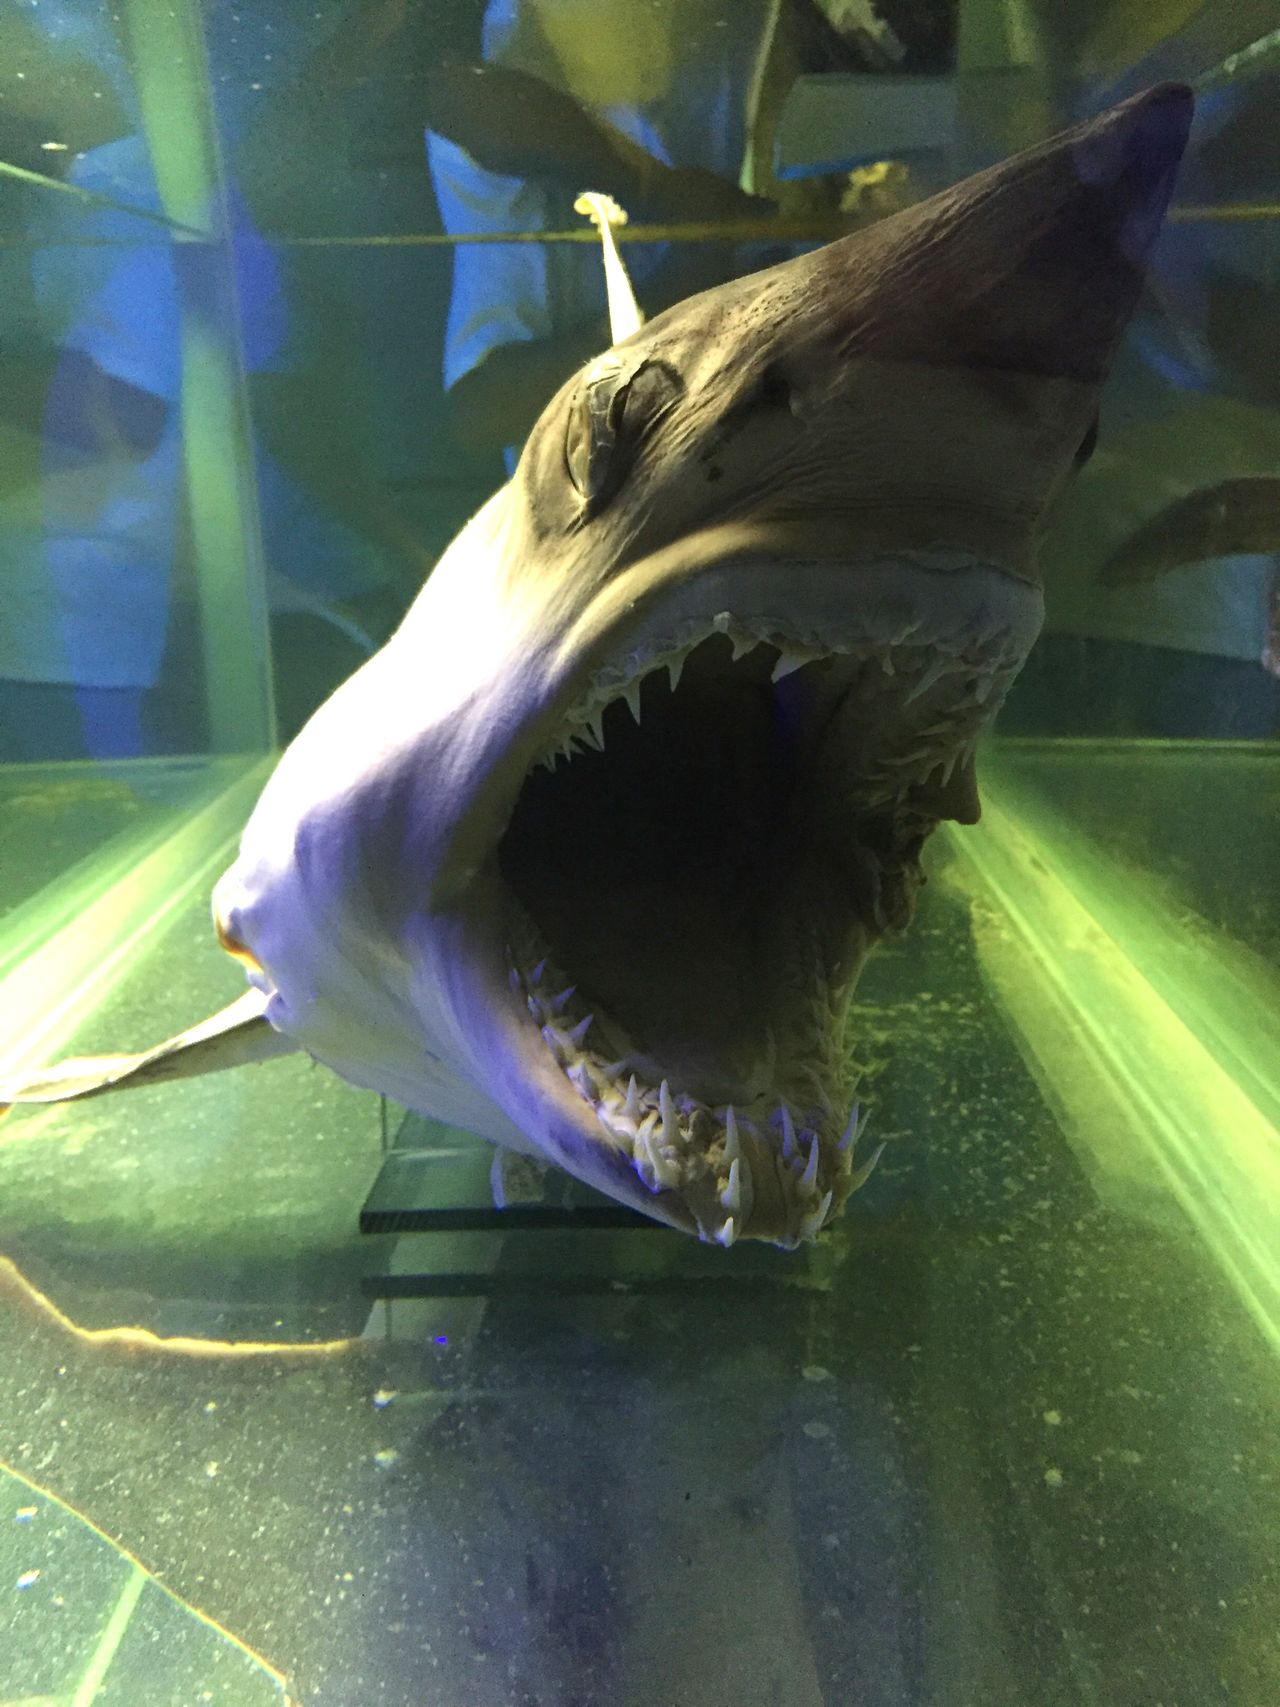 Animal Themes Fish One Animal Aquarium Close-up No People Indoors  Nature Water Shark Shark Mouth Shark Teeth Mouth Teeth Jaws Dead Animal Dead Shark